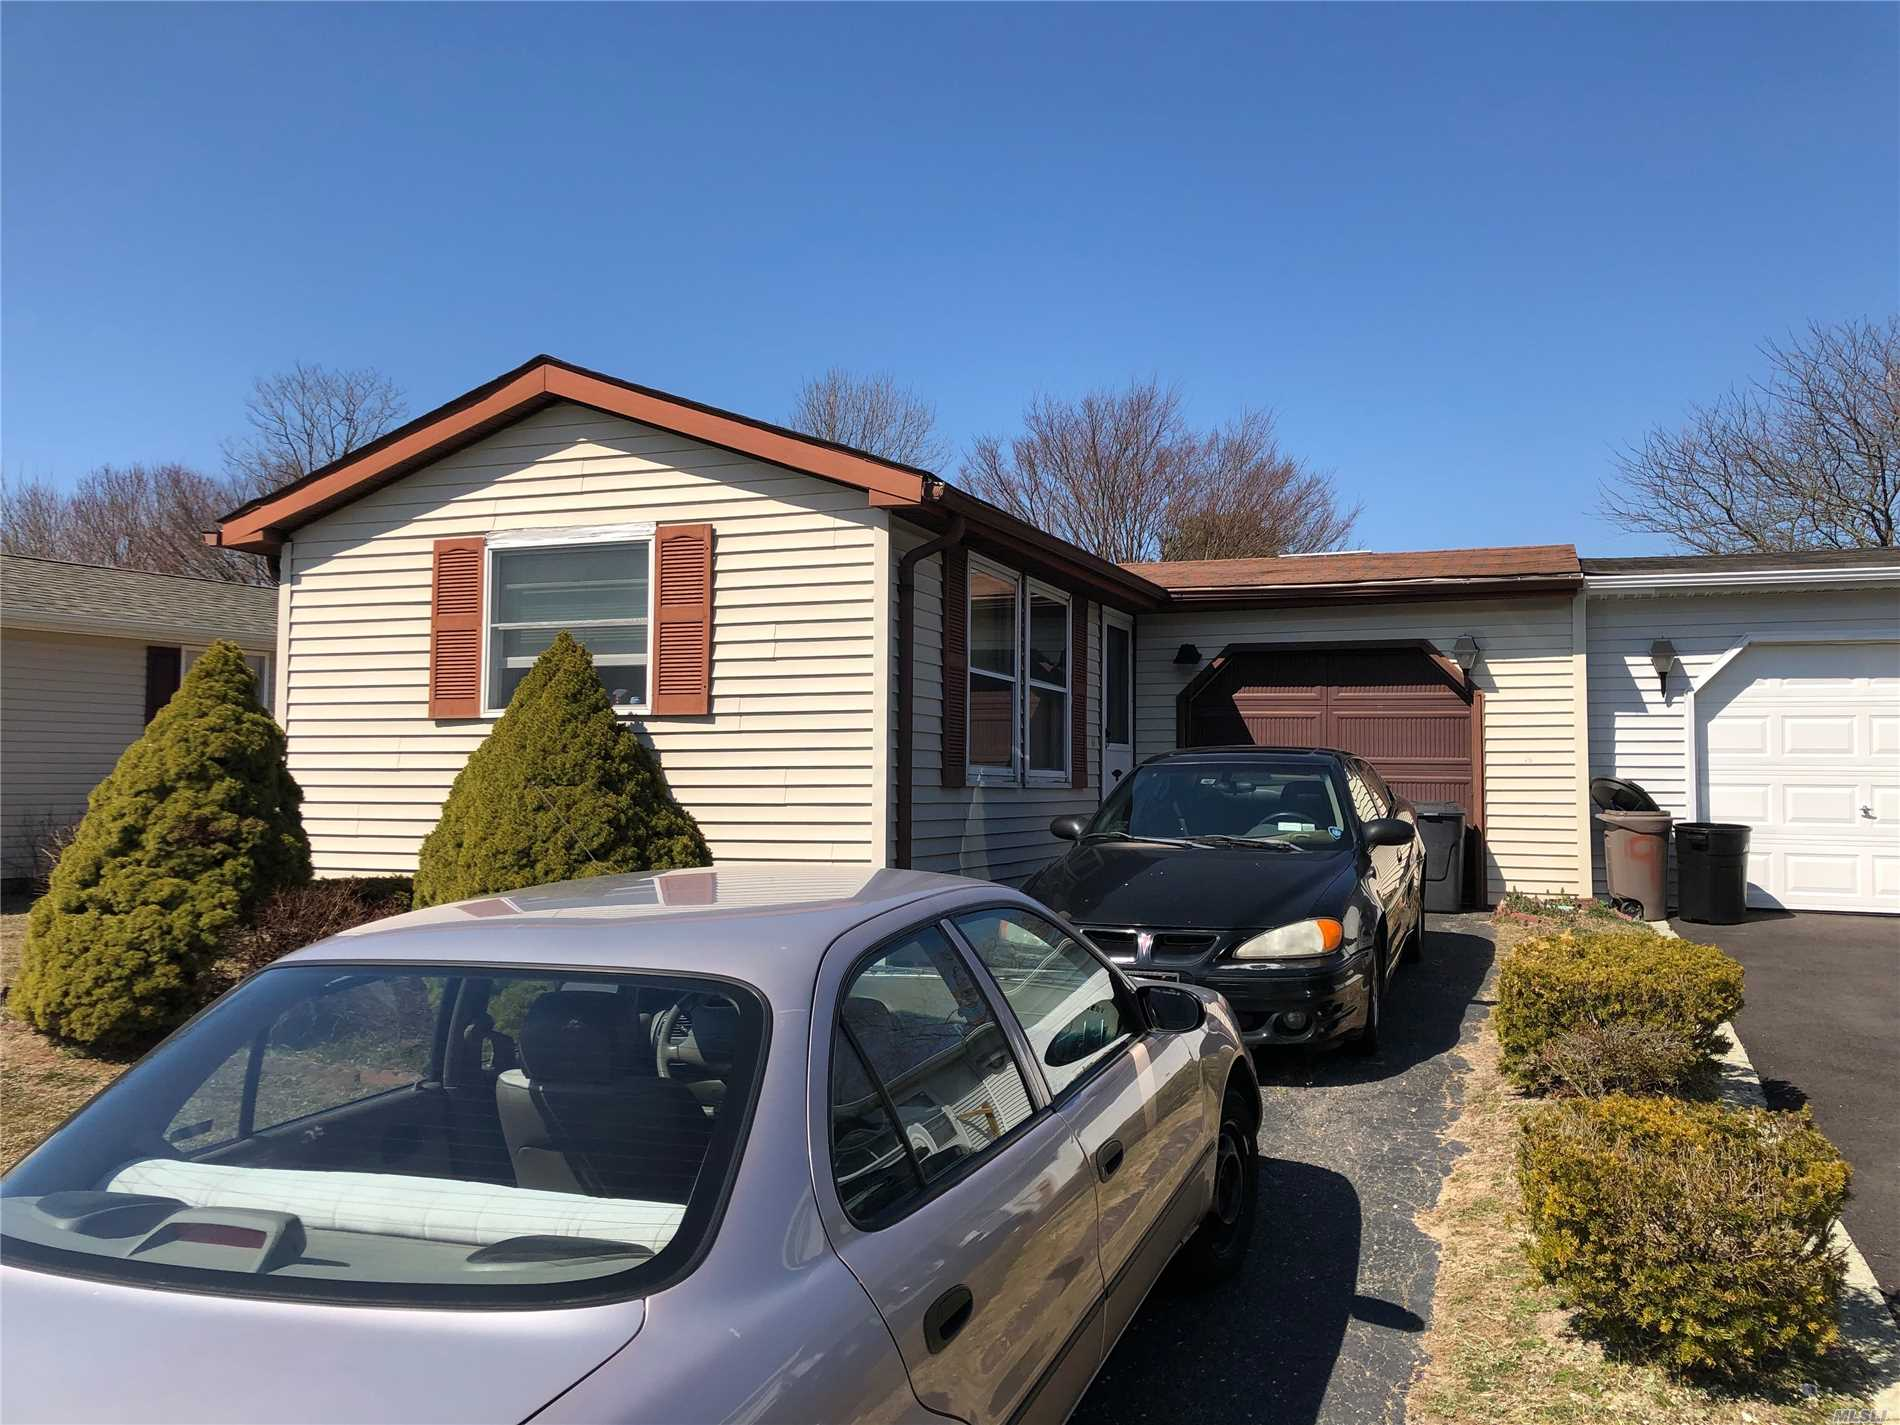 Photo of home for sale at 10 Greenwood Blvd, Manorville NY